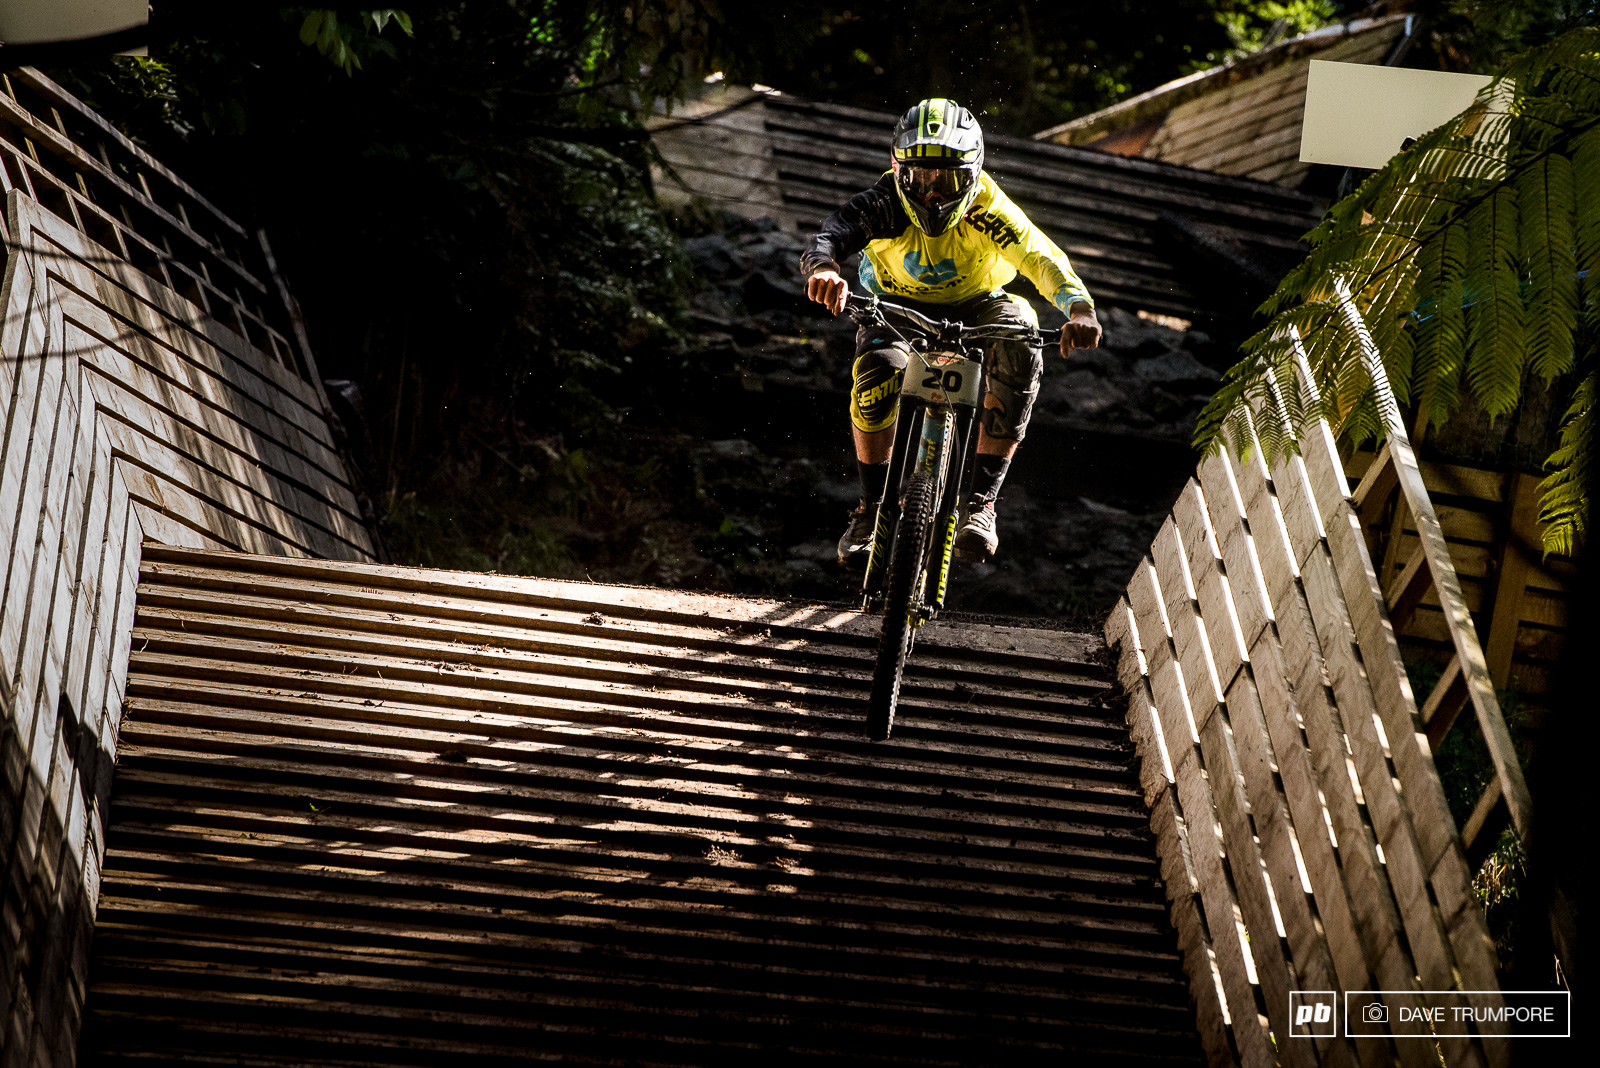 Kiwi hero Eddie Masters blasting through the man made bridge and rock garden section of track.